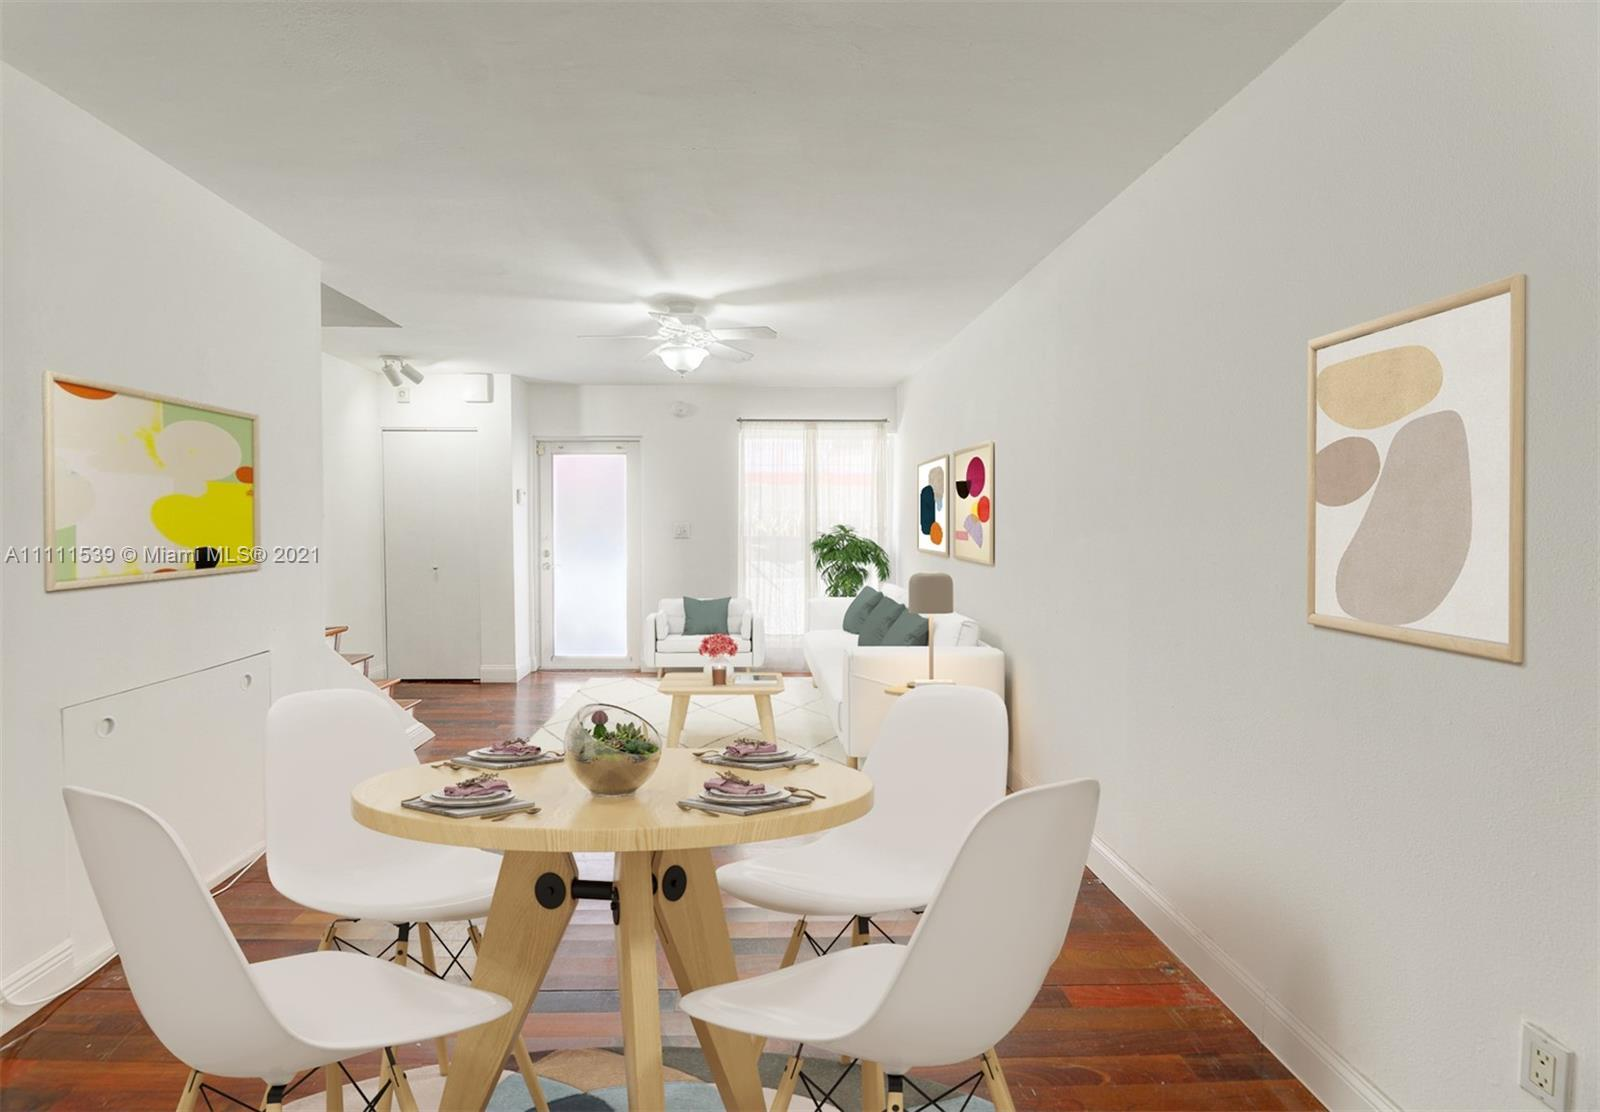 Art Deco charmer! Two story town house located in the heart of South Beach just a few blocks to the